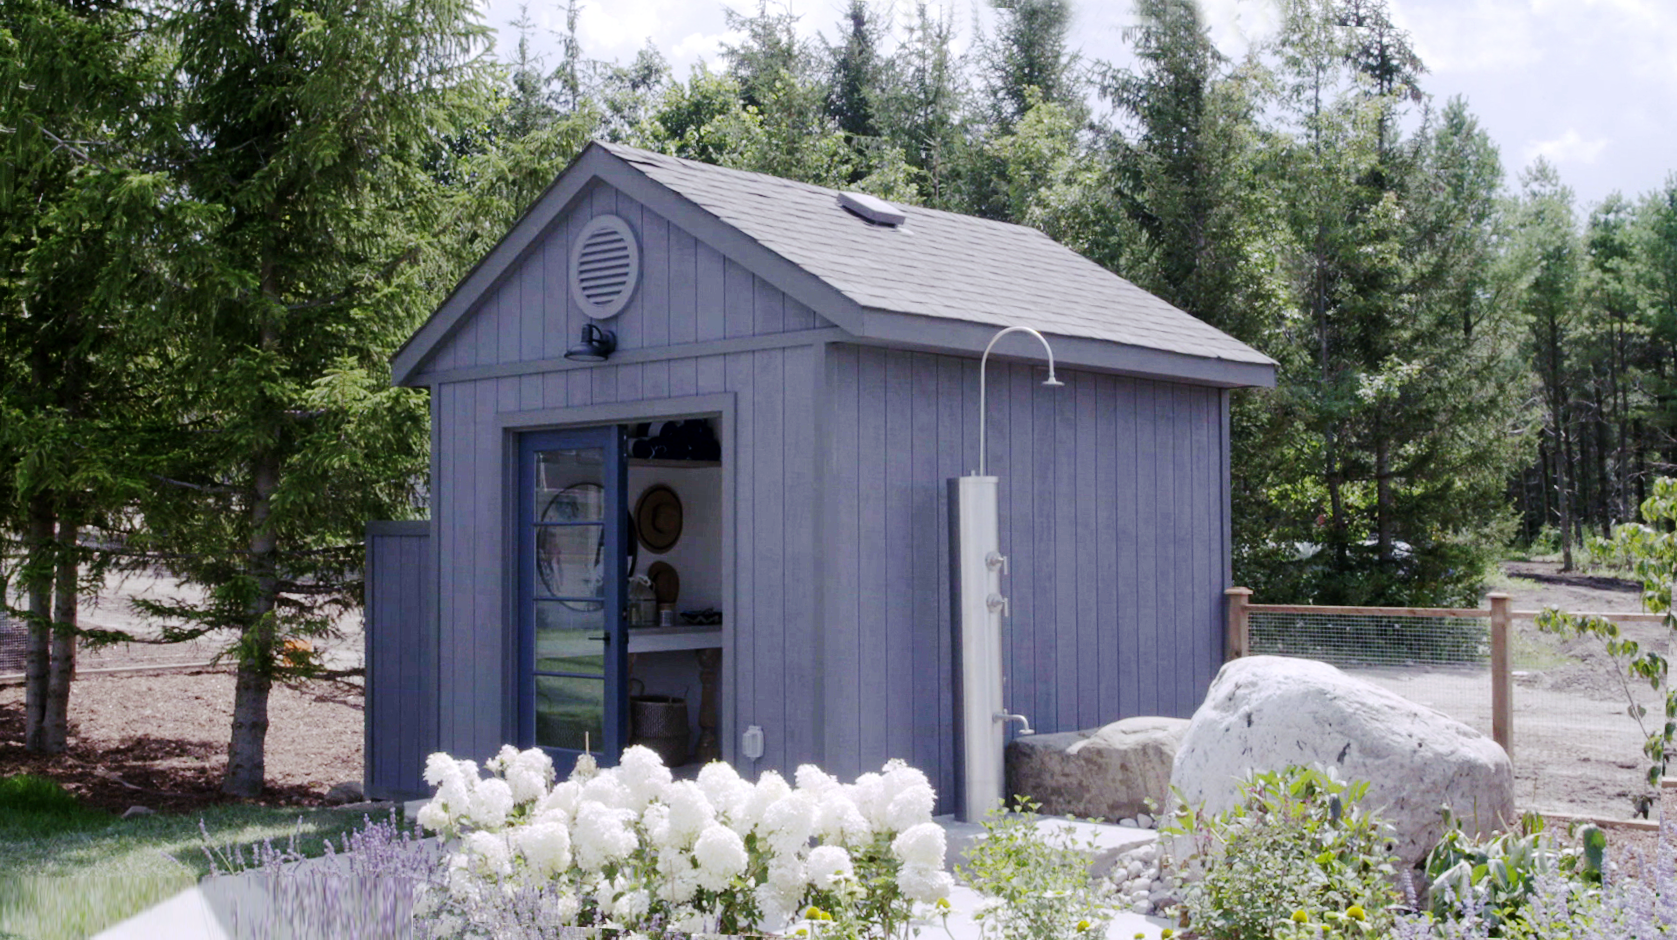 Sarah off the grid video upcycle an old shed into a pool for Shed into pool house